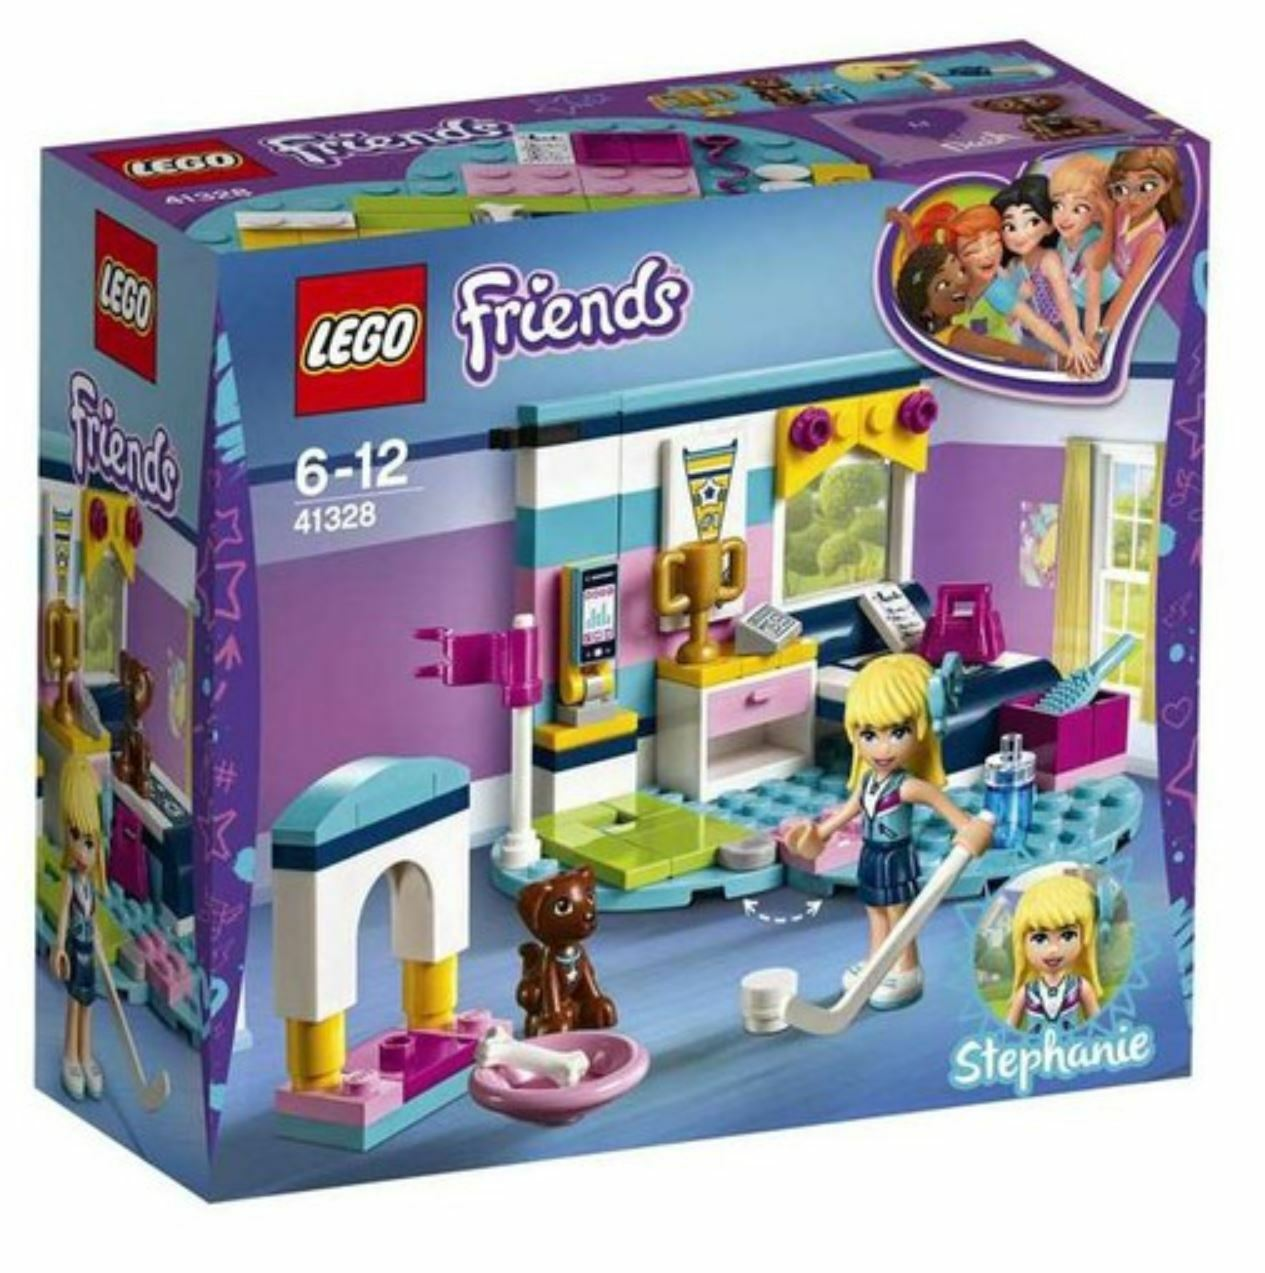 [LEGO] Friends Stephanie's Bedroom 41328 2018 Version Free Shipping